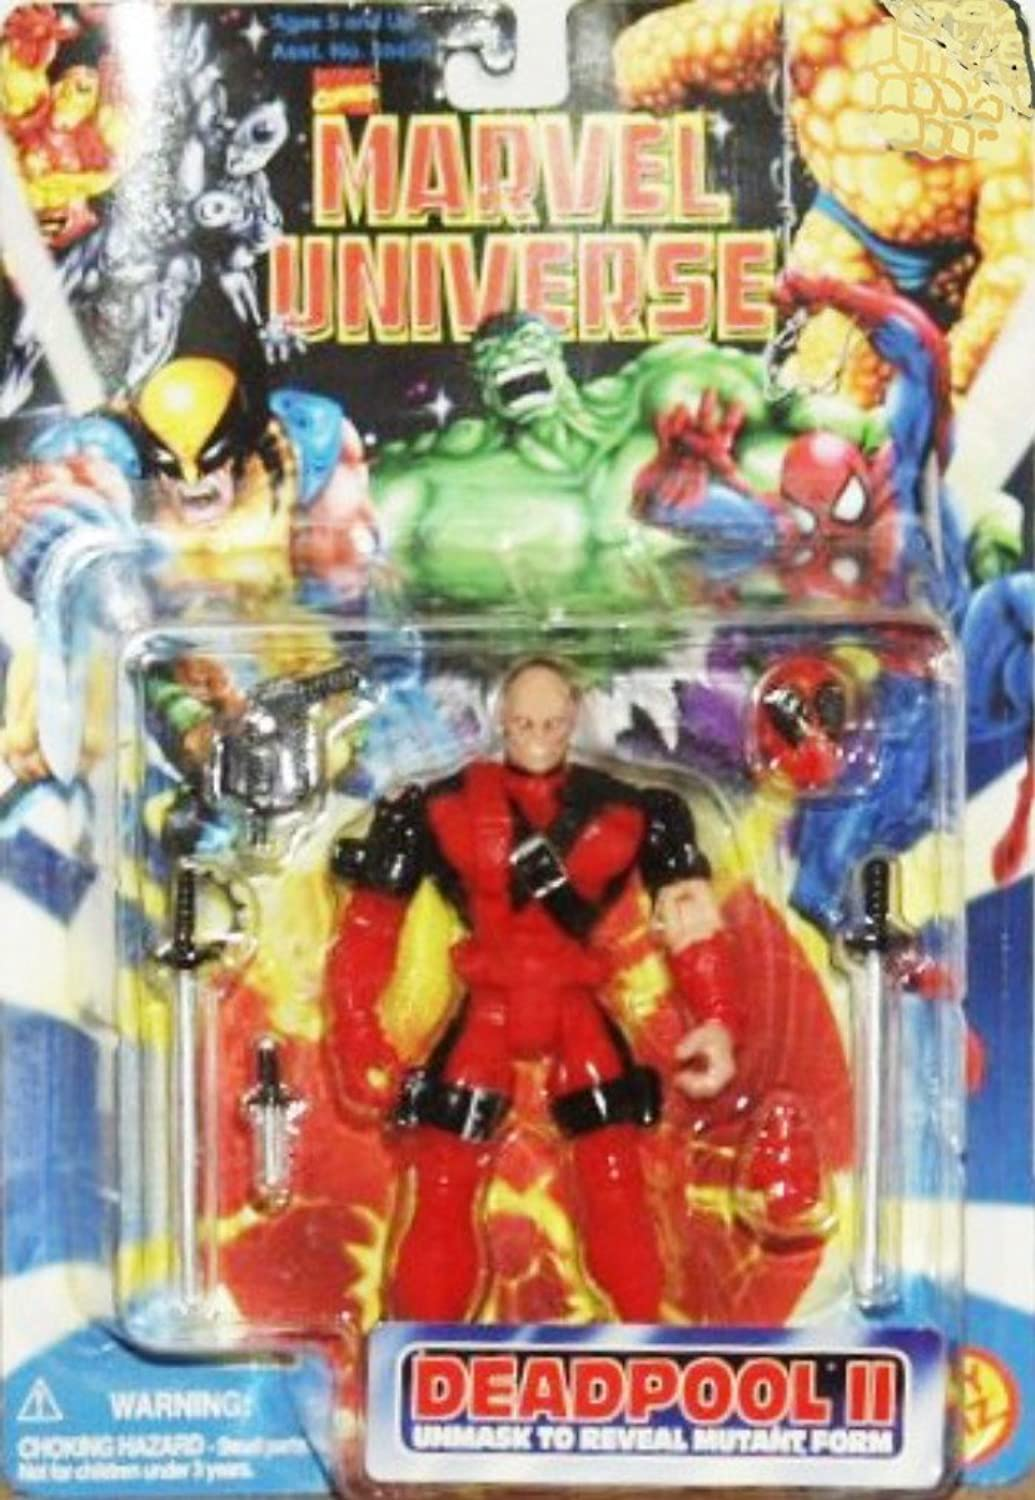 Toy Biz, Inc. Marvel Universe Deadpool Ii 1996 Action Figure